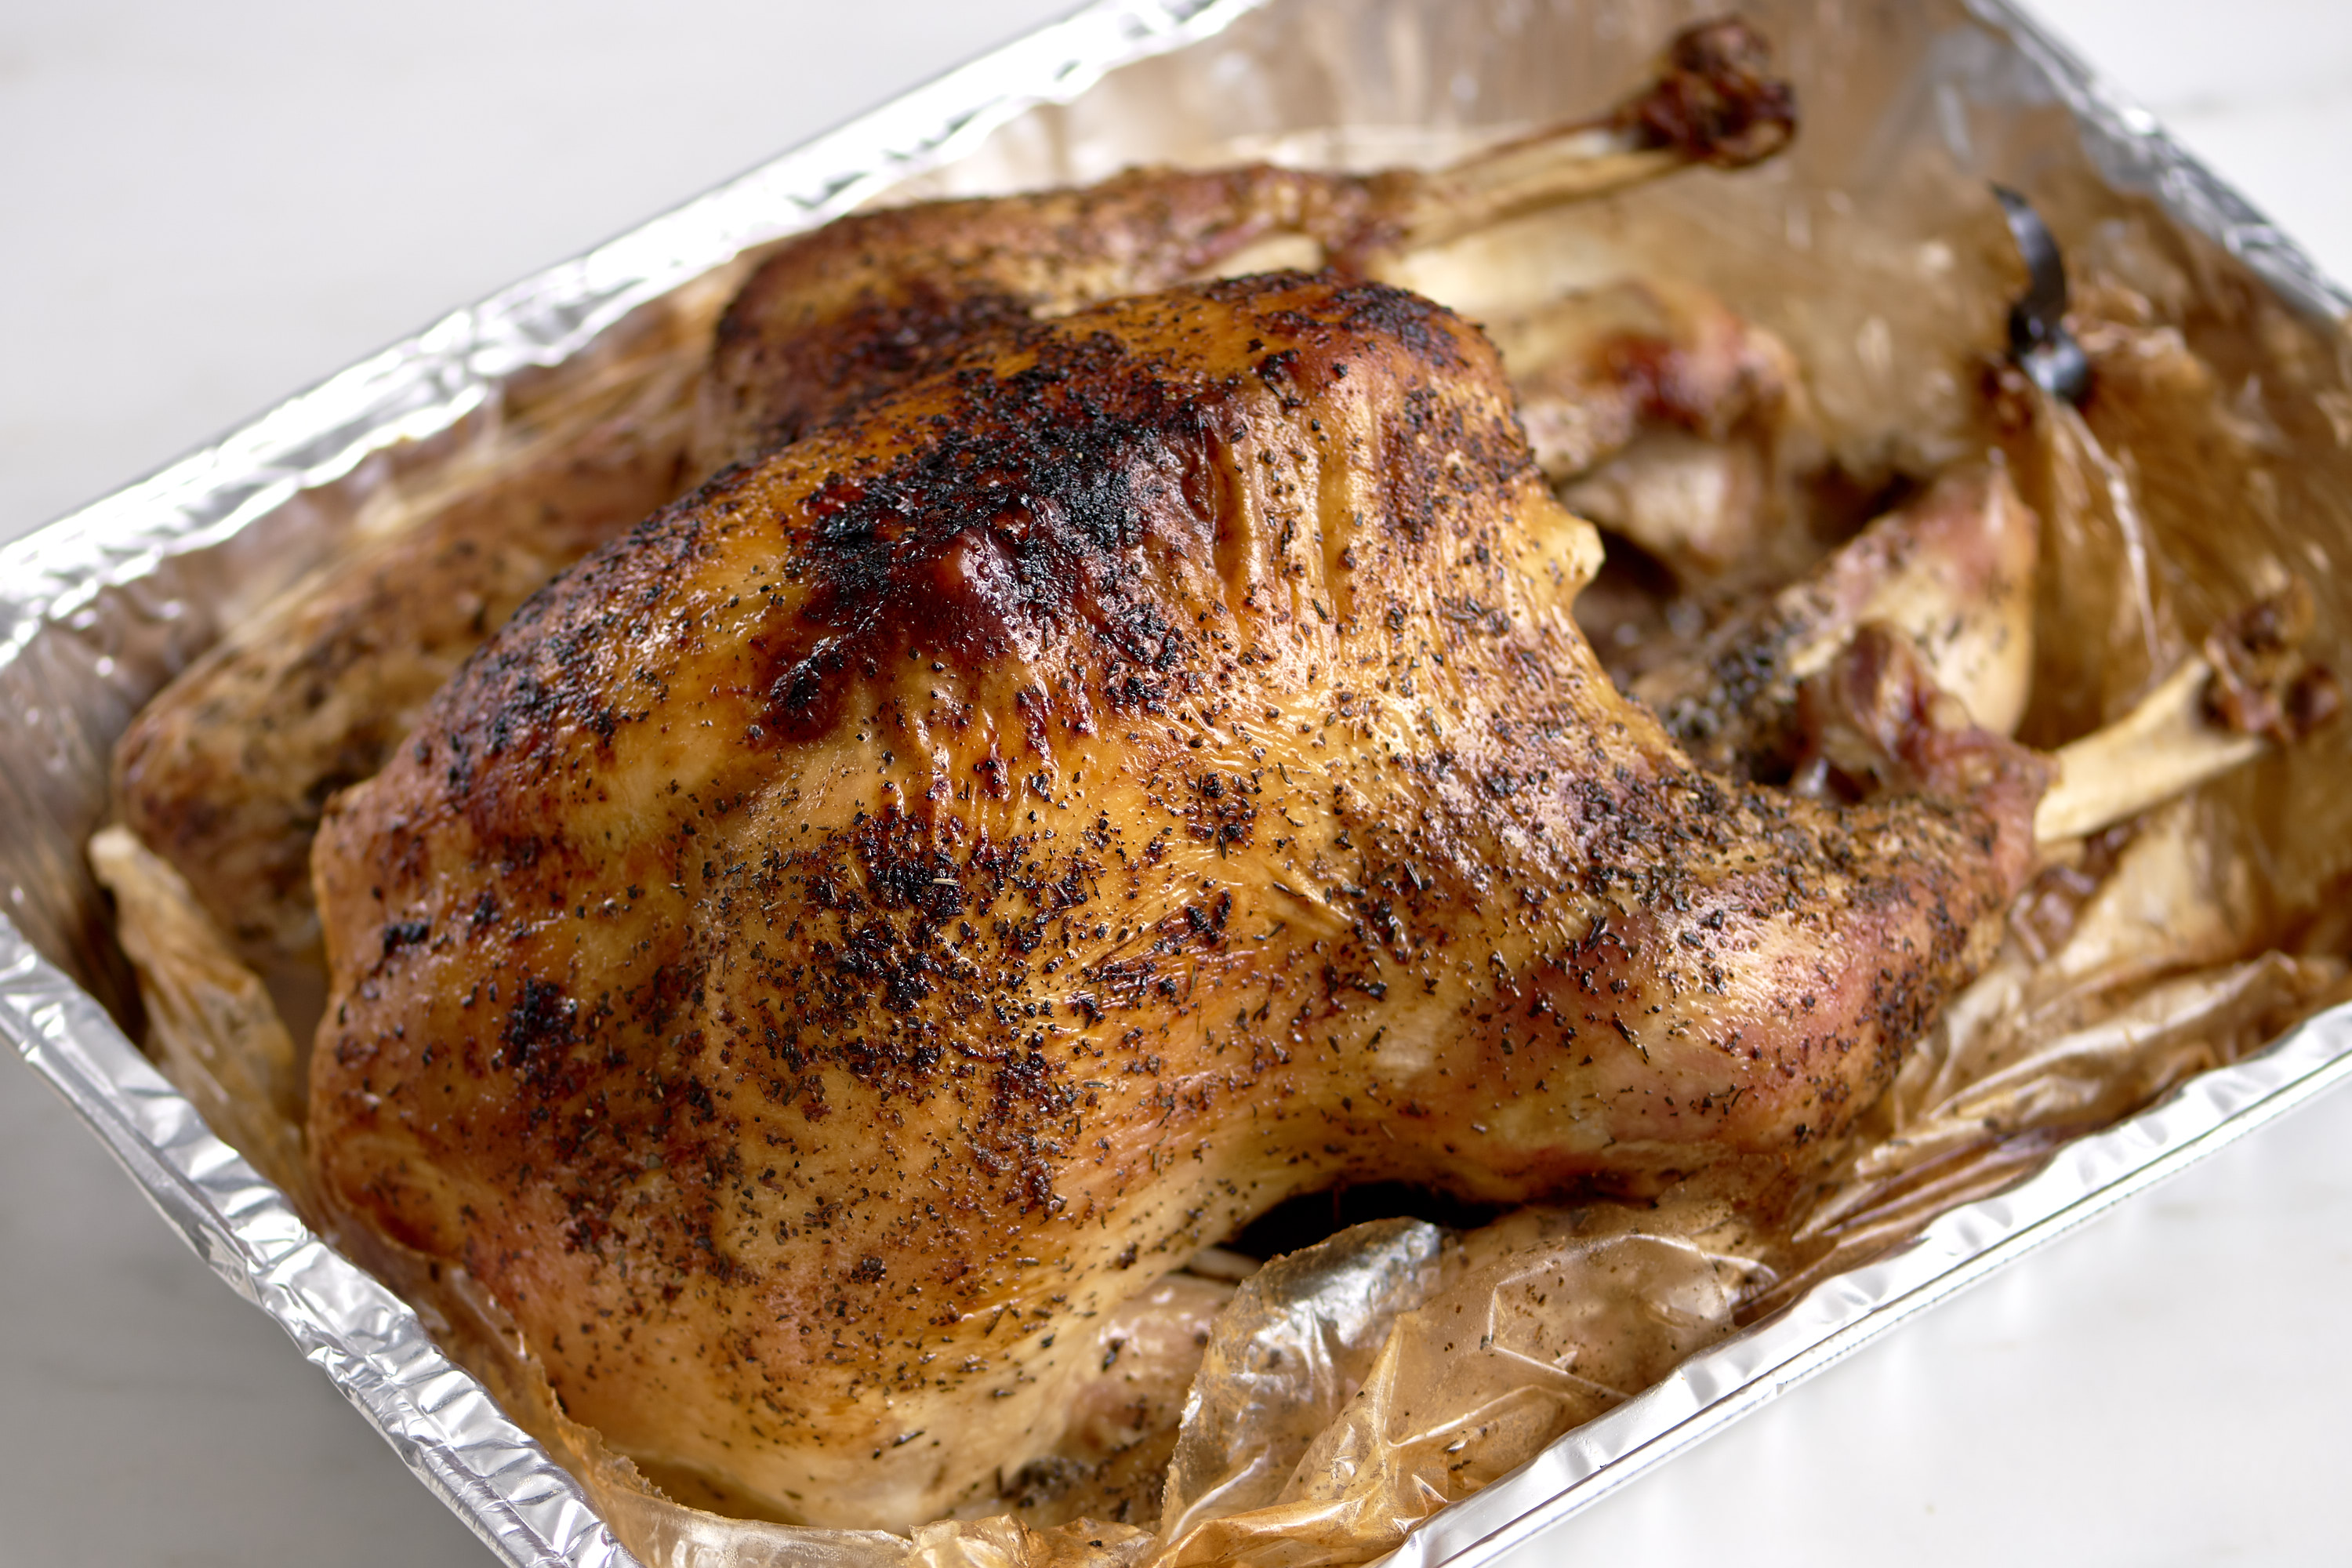 How To Make Turkey in a Bag